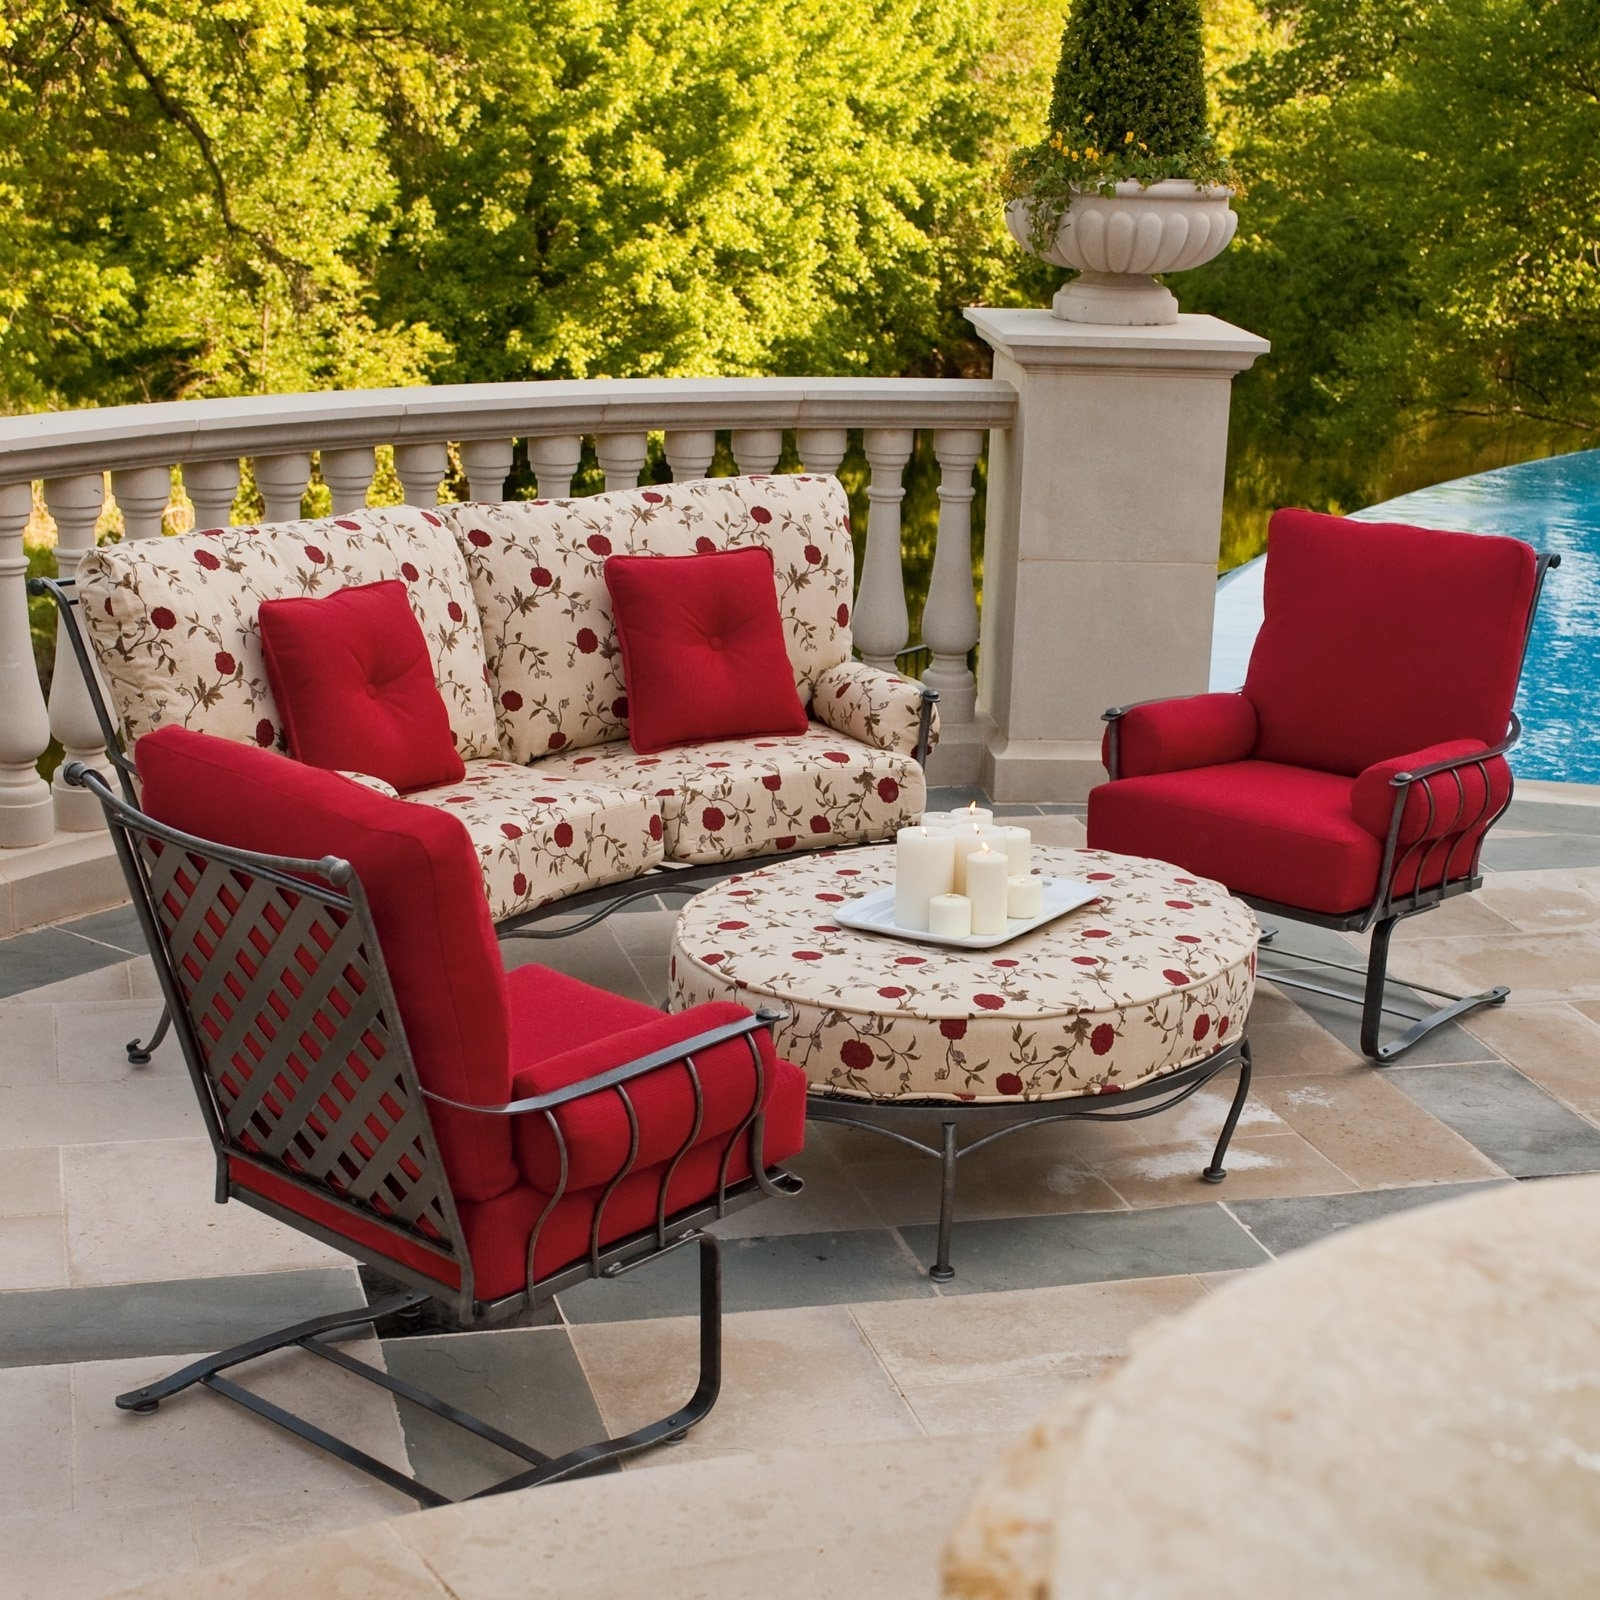 Patio Conversation Sets With Ottoman T40K In Excellent Home Design Pertaining To Recent Patio Conversation Sets With Ottoman (View 11 of 20)